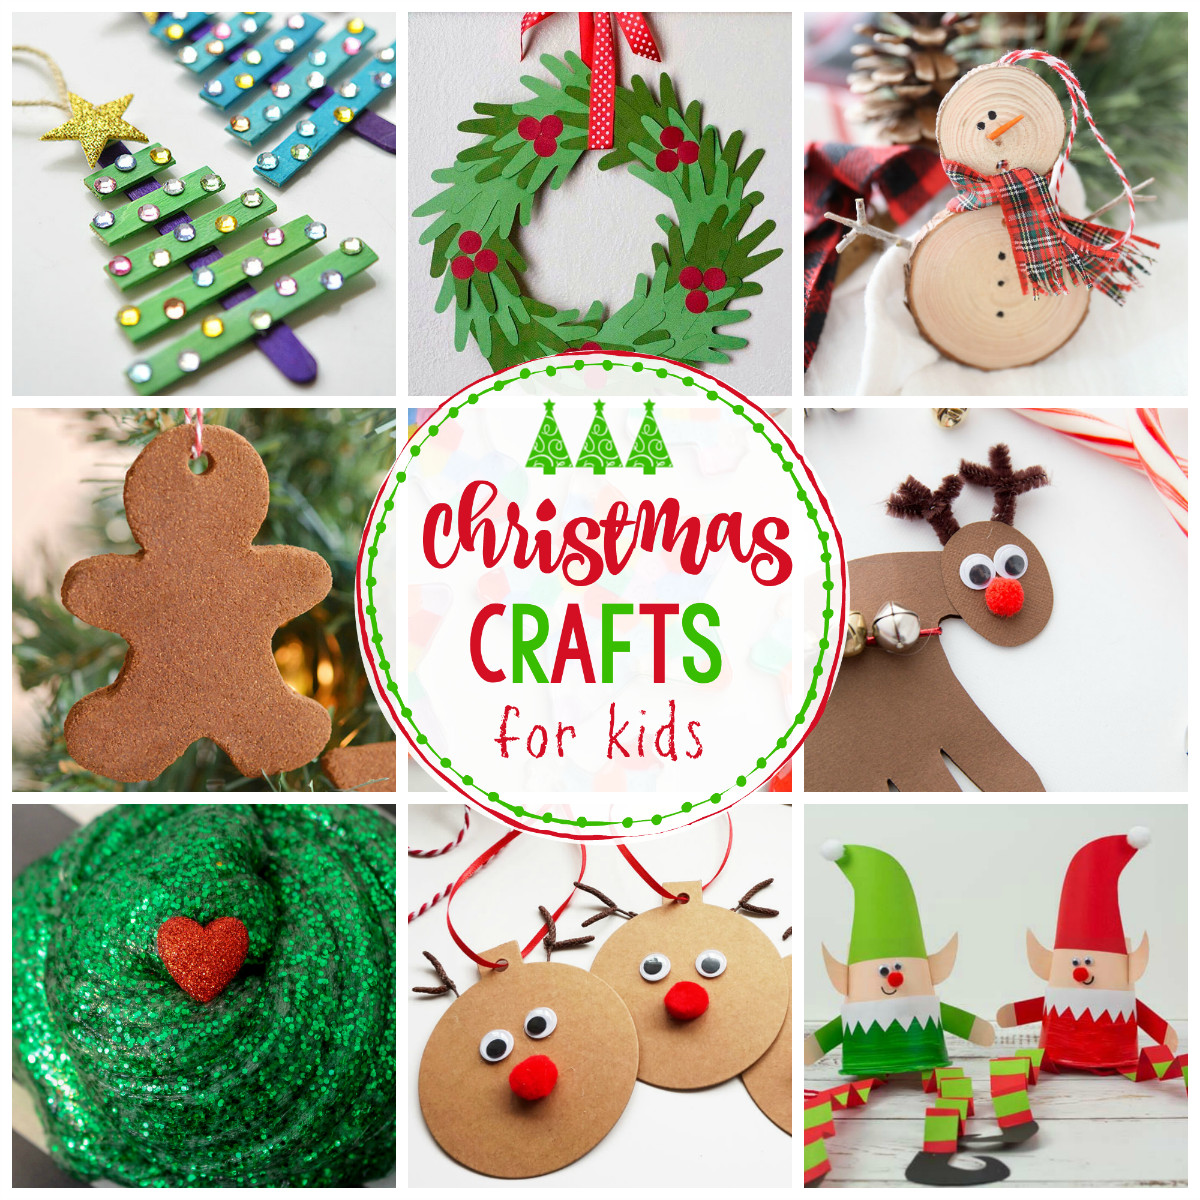 Best ideas about Crafts For Little Kids . Save or Pin 25 Easy Christmas Crafts for Kids Crazy Little Projects Now.